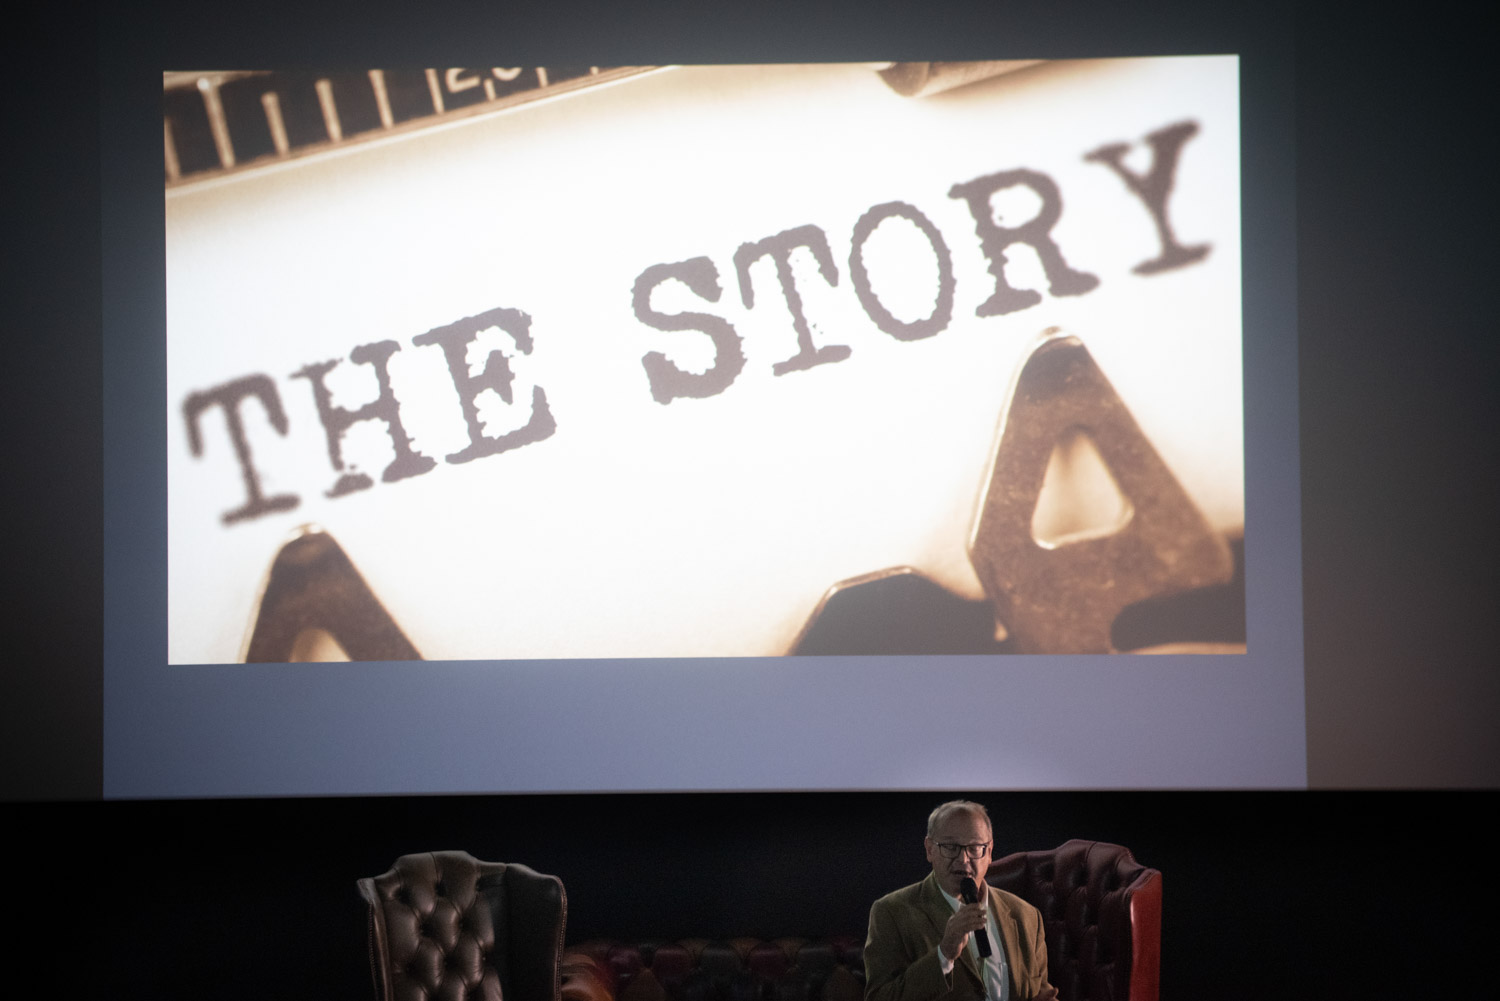 Richard Melman of Spring Films speaking about acquiring compelling documentary stories at his keynote talk